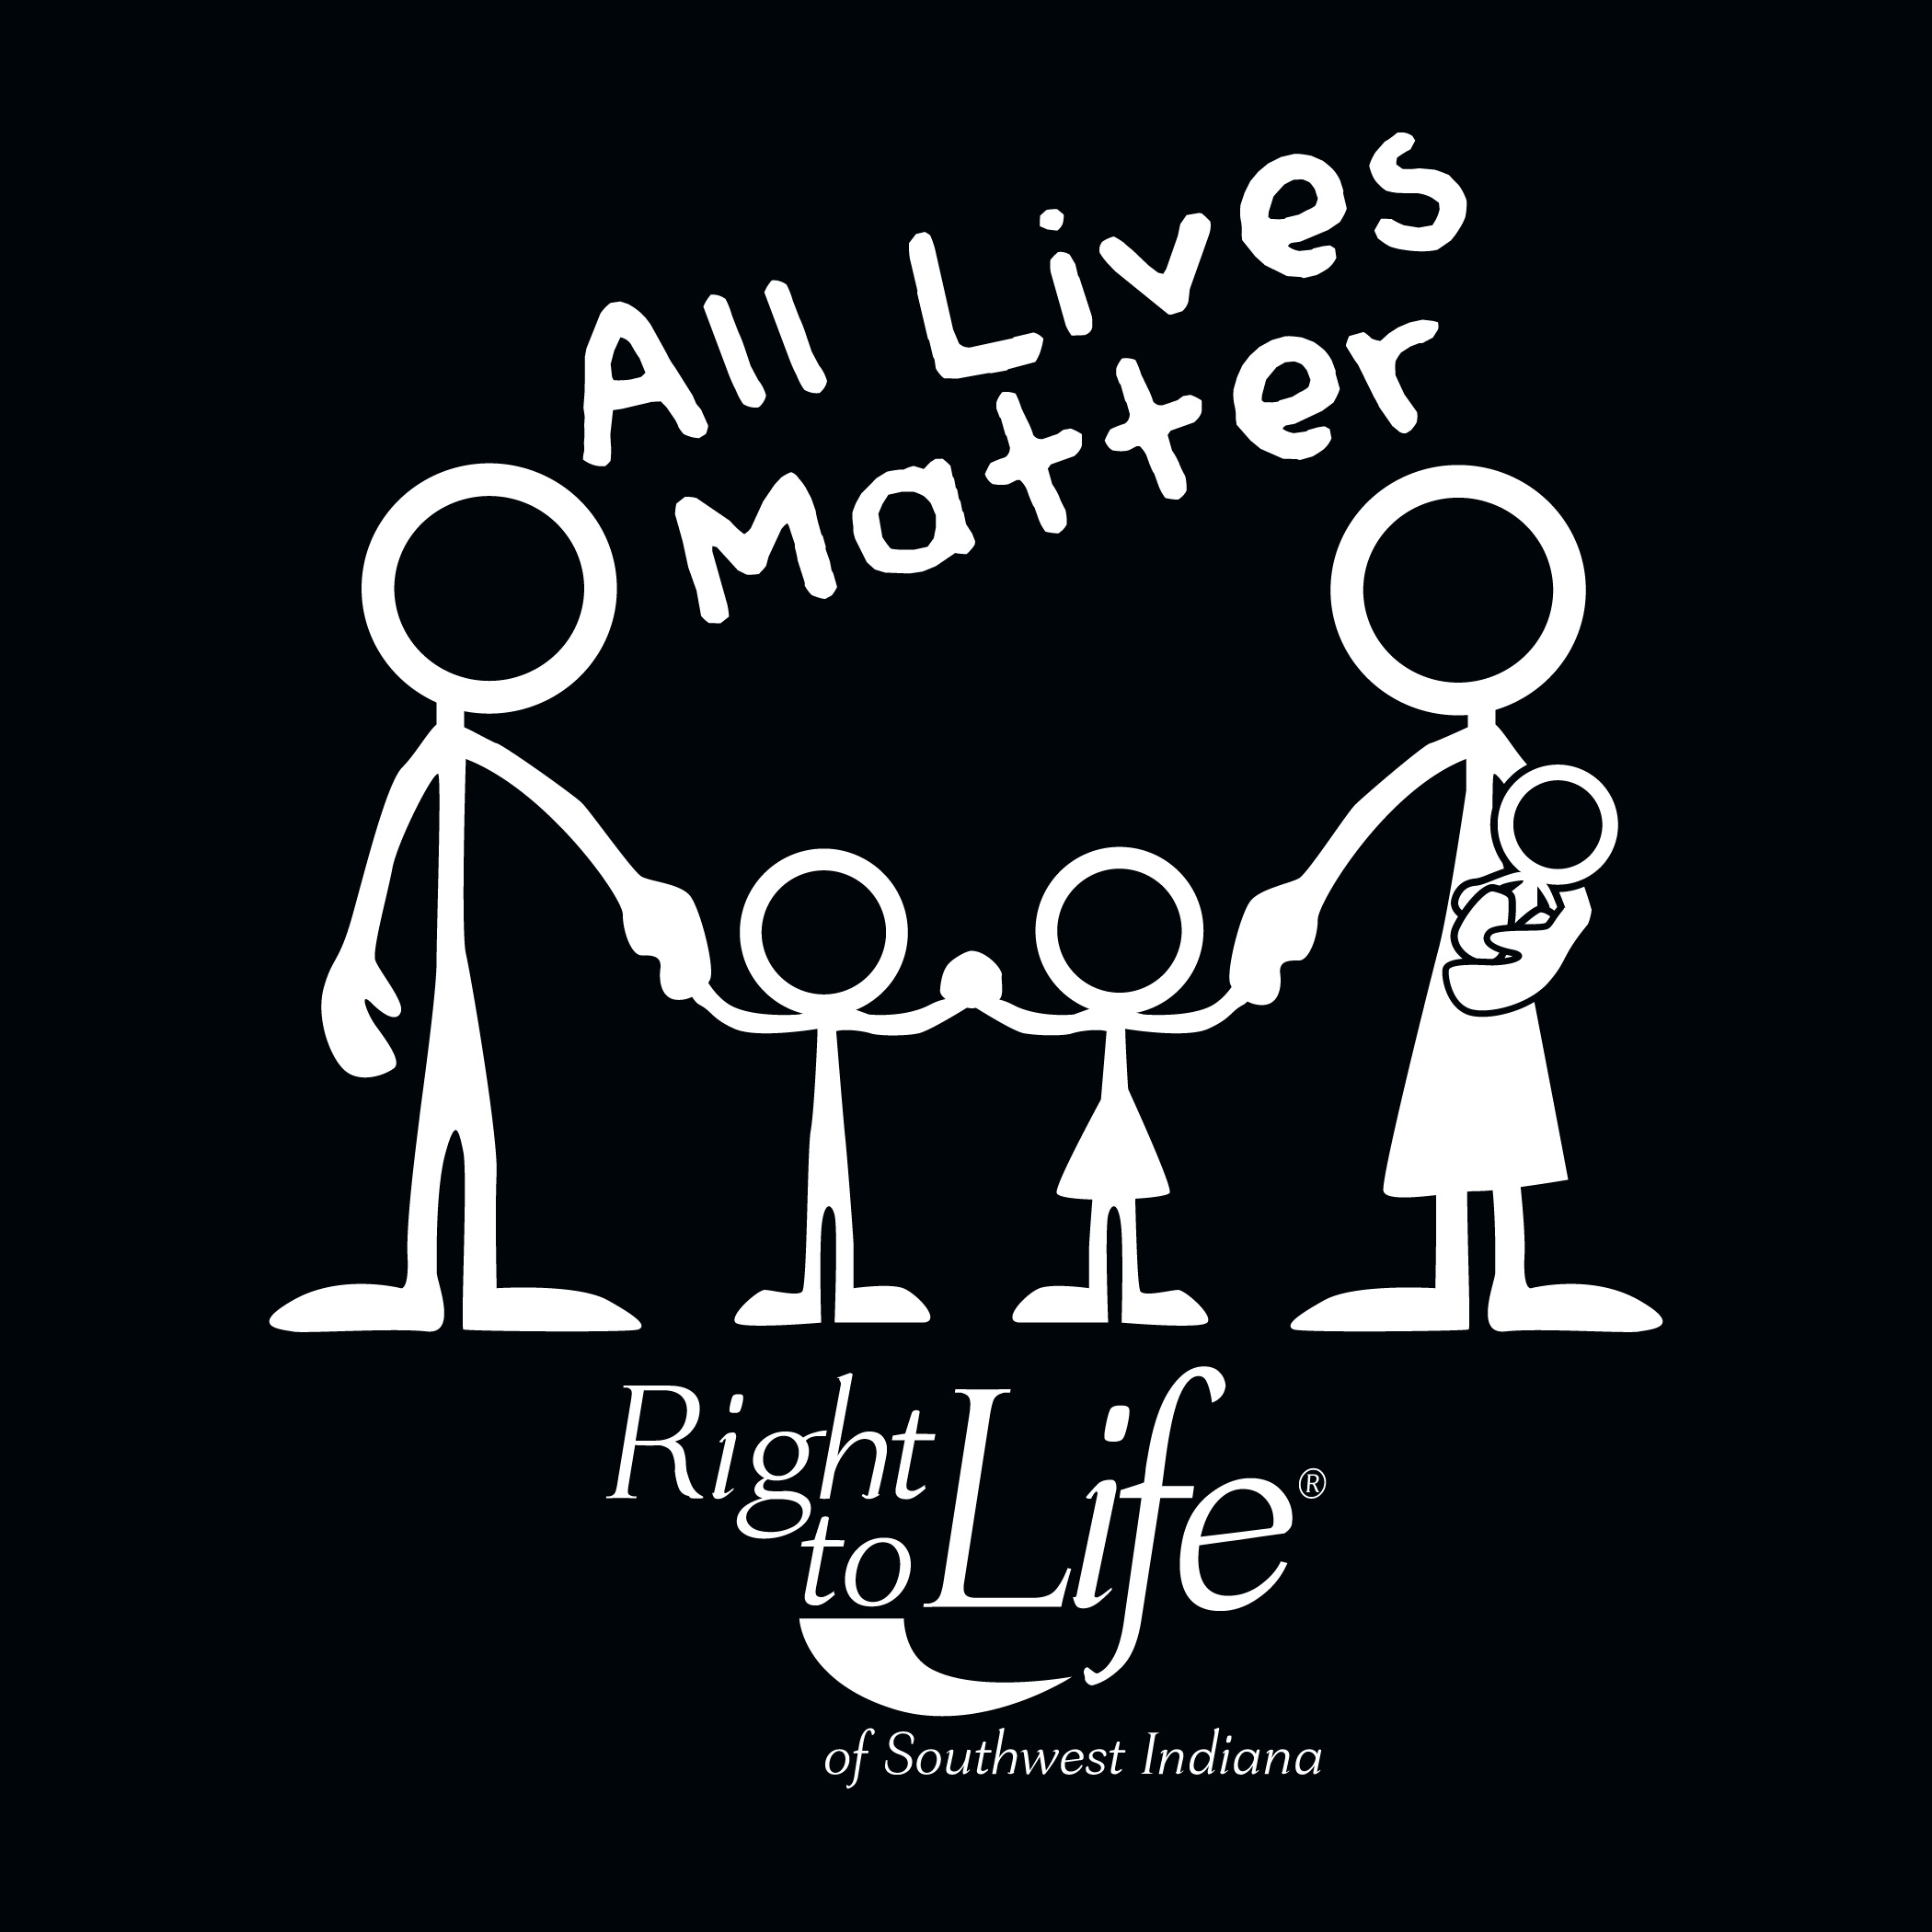 indiana right to life essay contest Pro-life democrats also support the right of the unborn to life and for health care & financial help for those mothers who might feel forced to abort because they don't feel they can afford to carry a baby to viability &/or raise a baby.